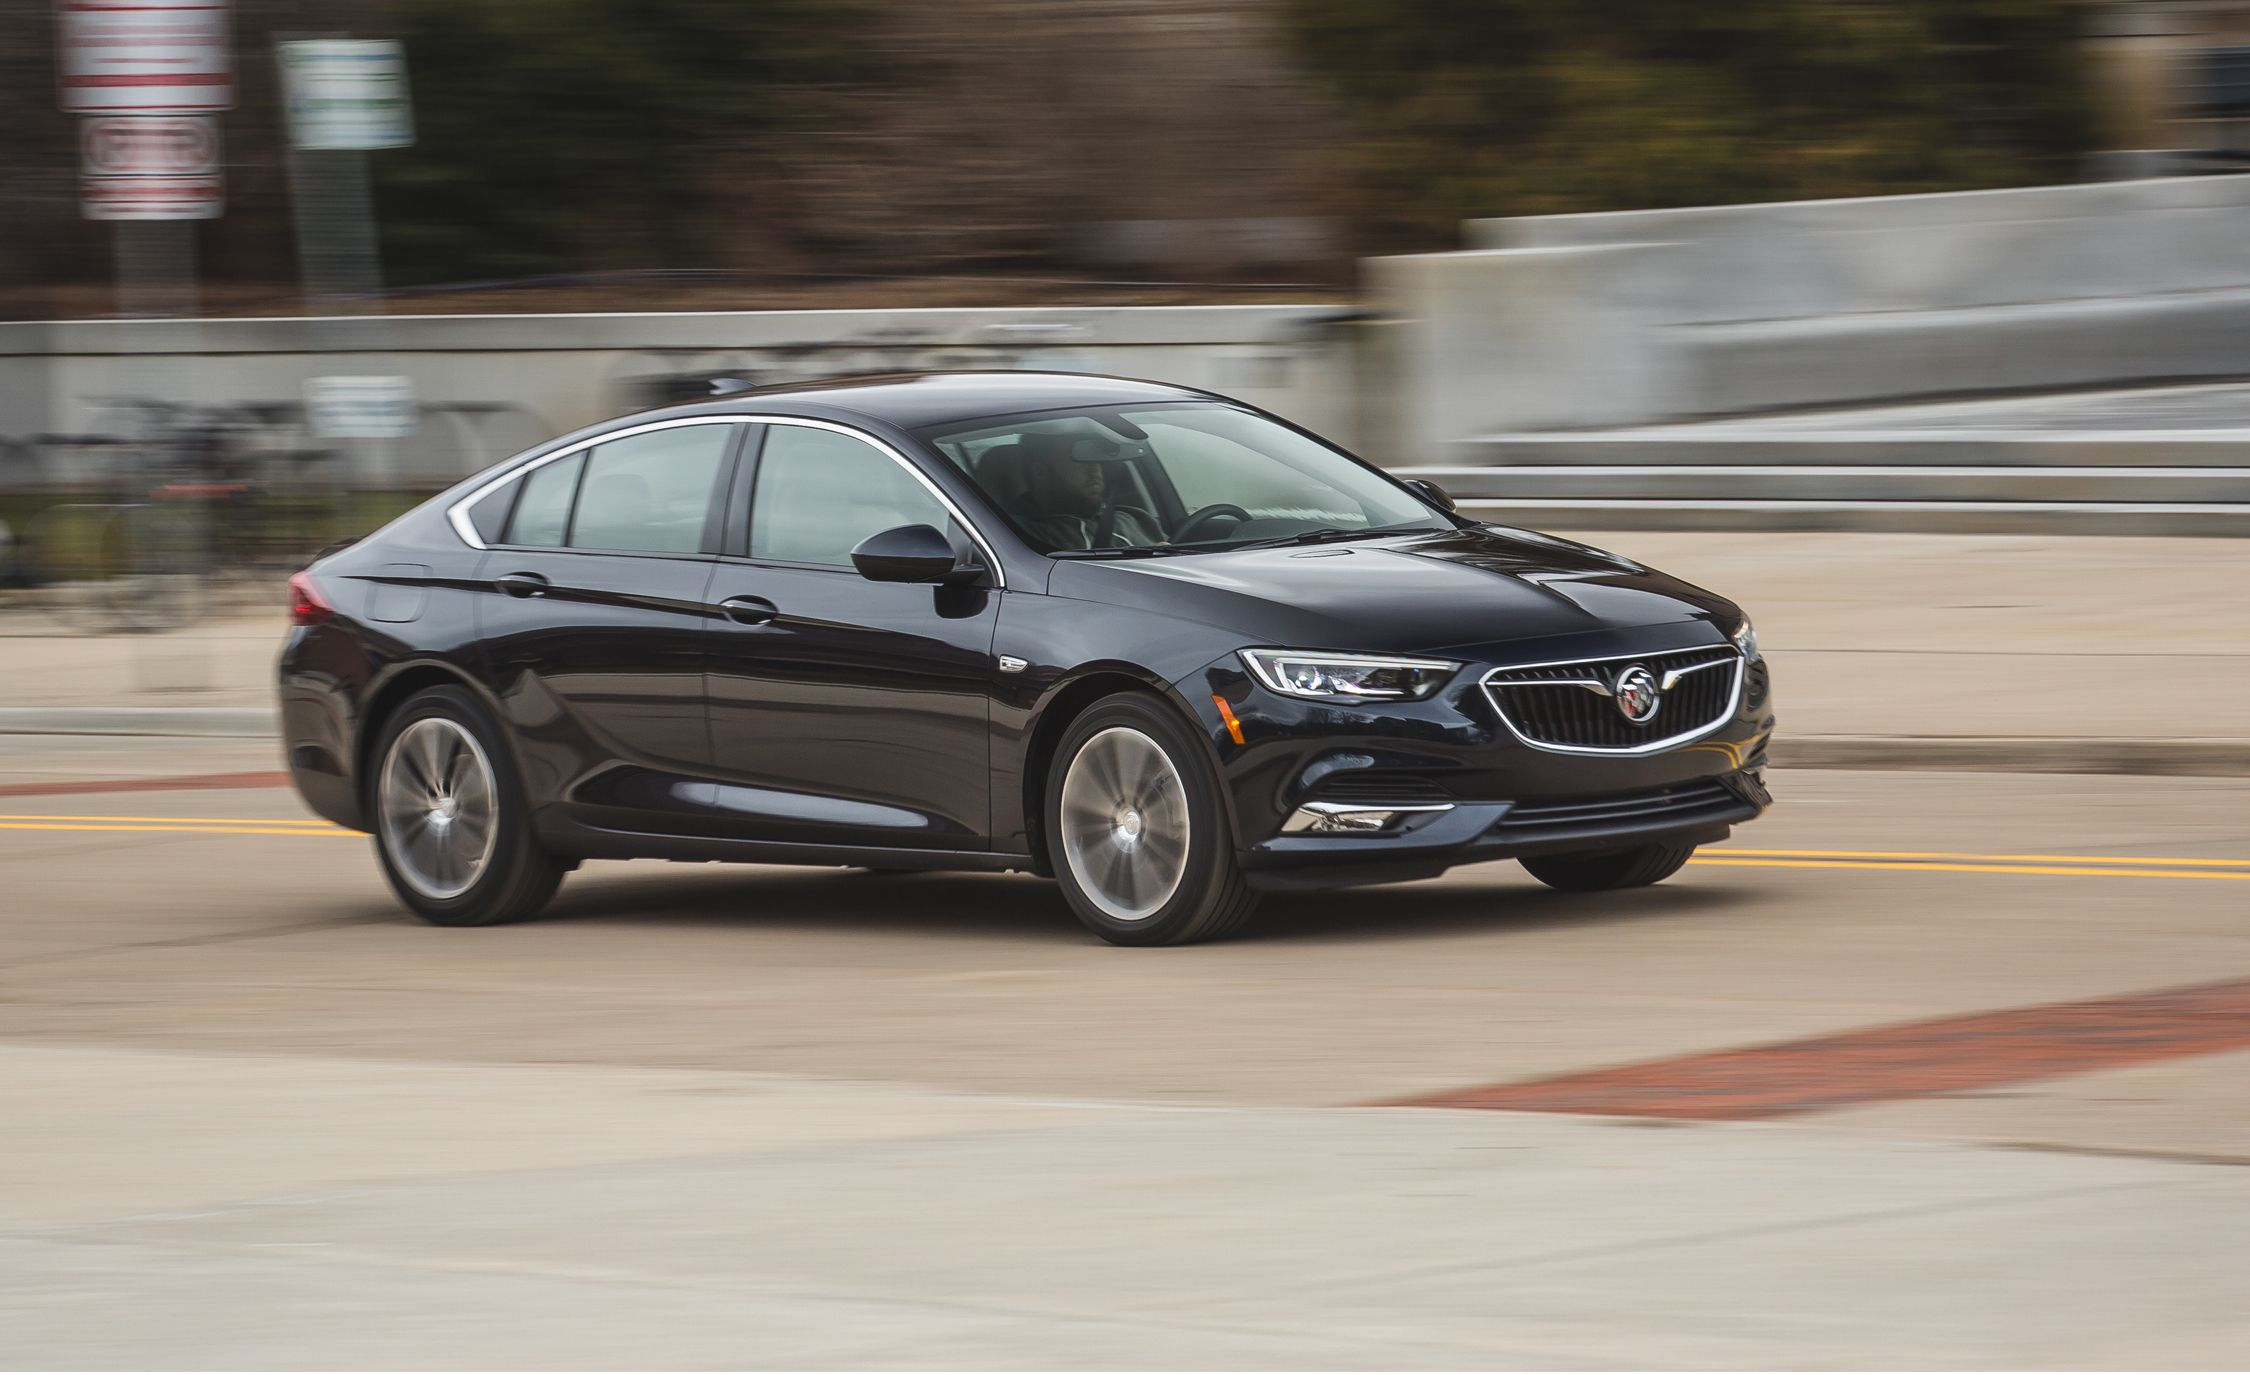 2018 Buick Regal Sportback Fwd Test | Review | Car And Driver 2021 Buick Regal Sportback Review, Price, 0-60